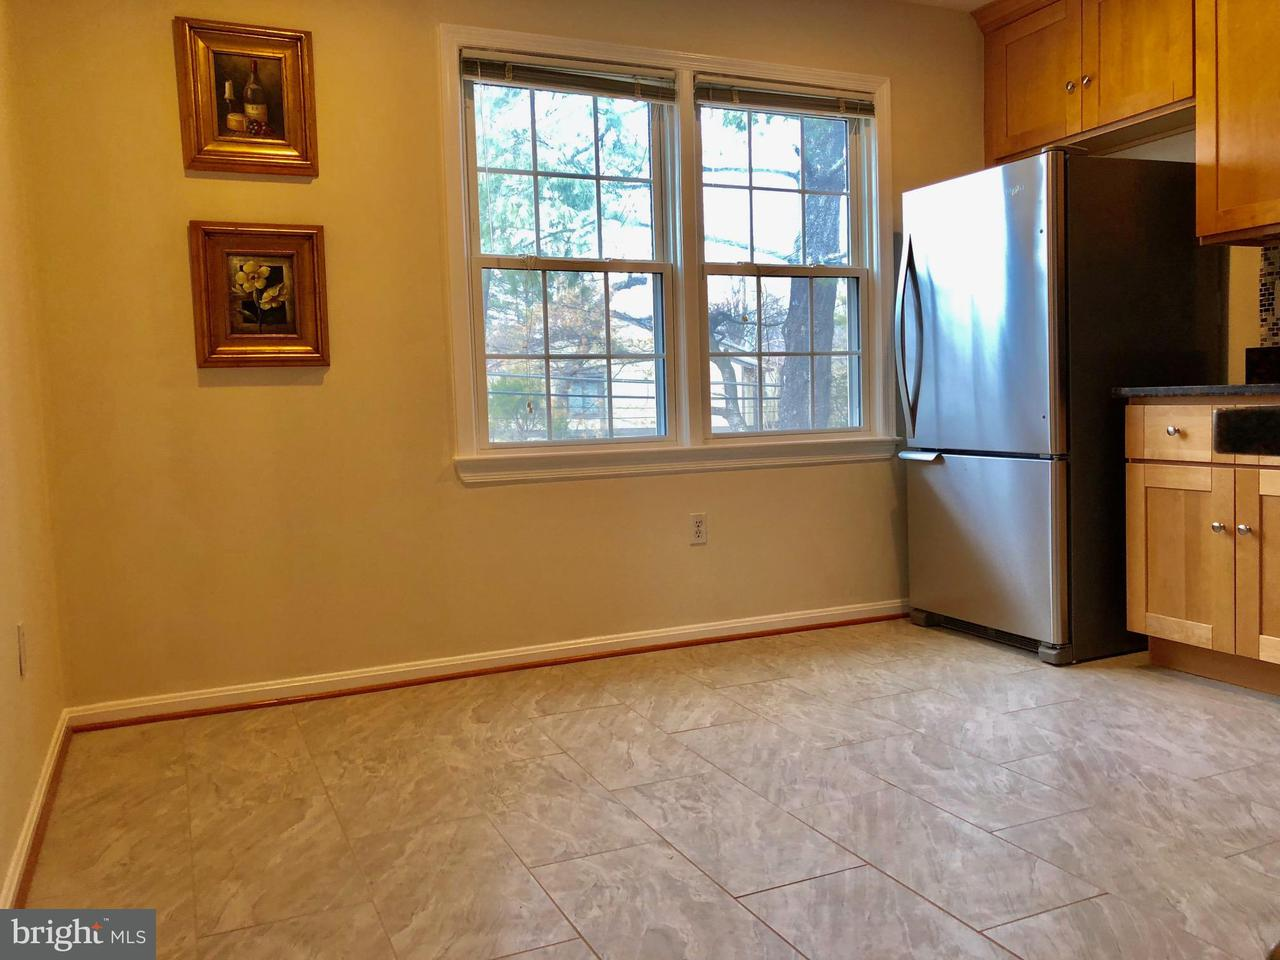 Additional photo for property listing at 6891 Chelsea Road 6891 Chelsea Road McLean, Virginia 22101 Verenigde Staten